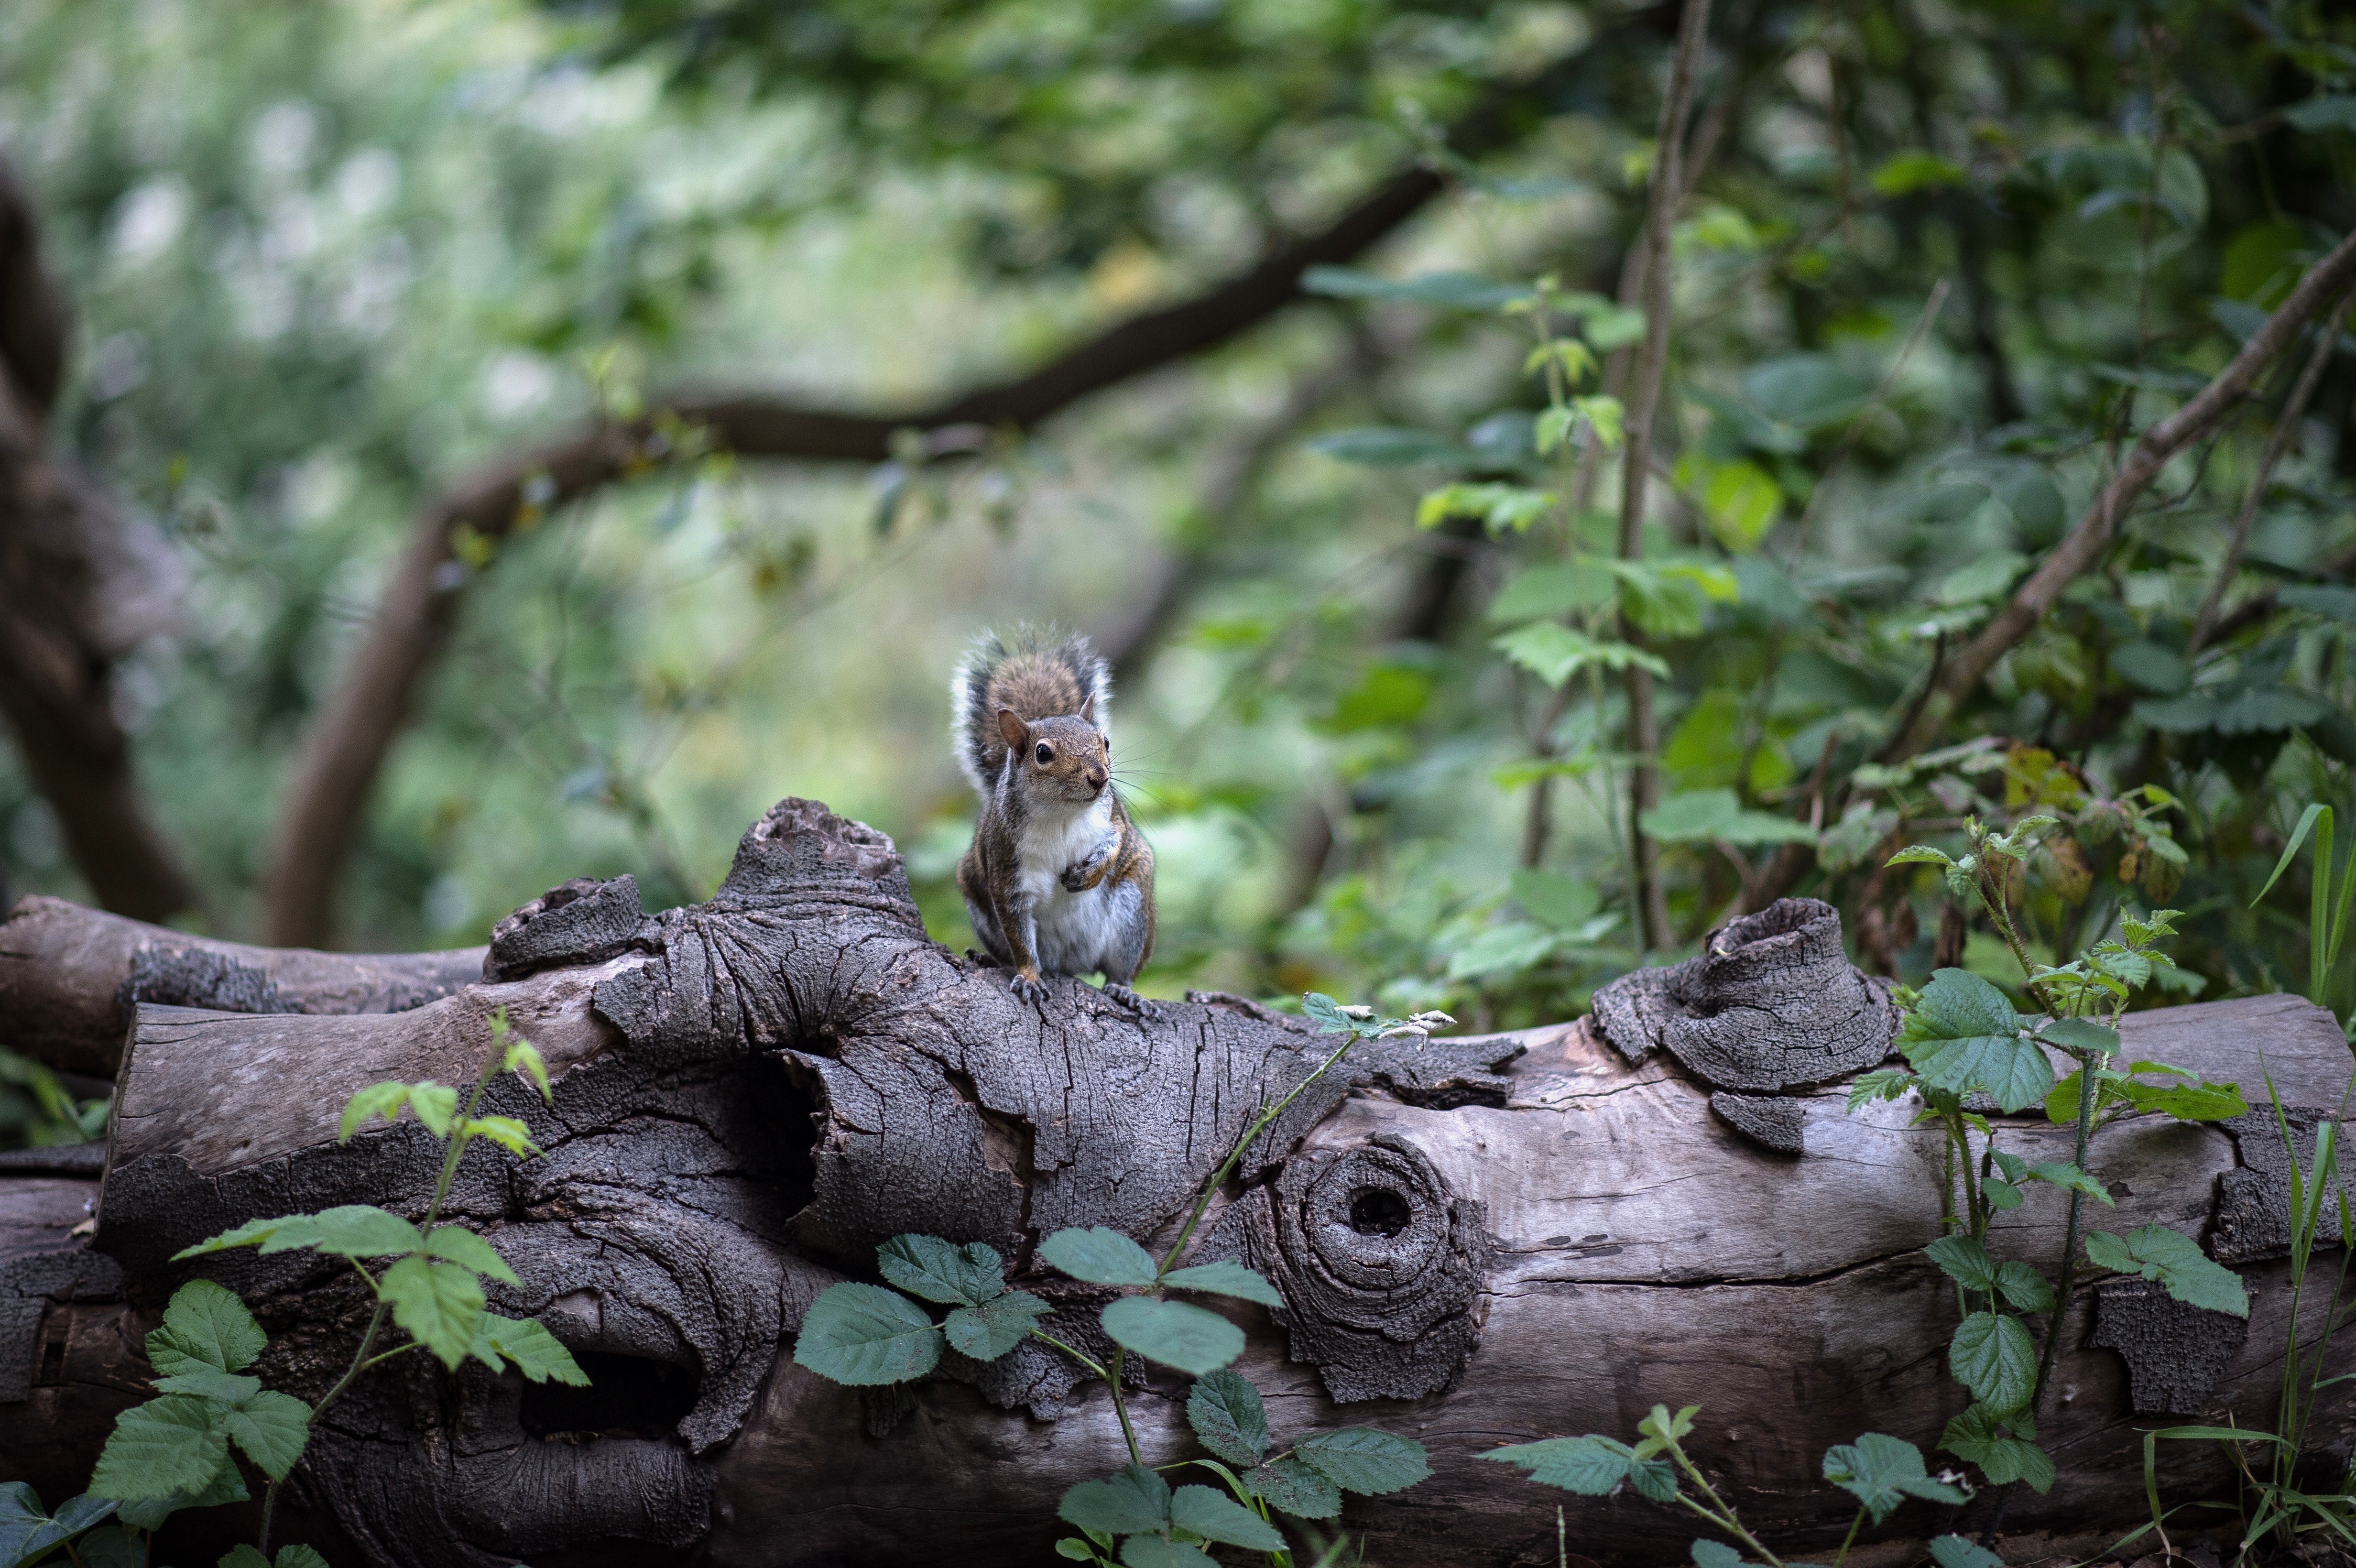 98598 download wallpaper Animals, Squirrel, Wood, Tree, Rodent, Is Sitting, Sits screensavers and pictures for free